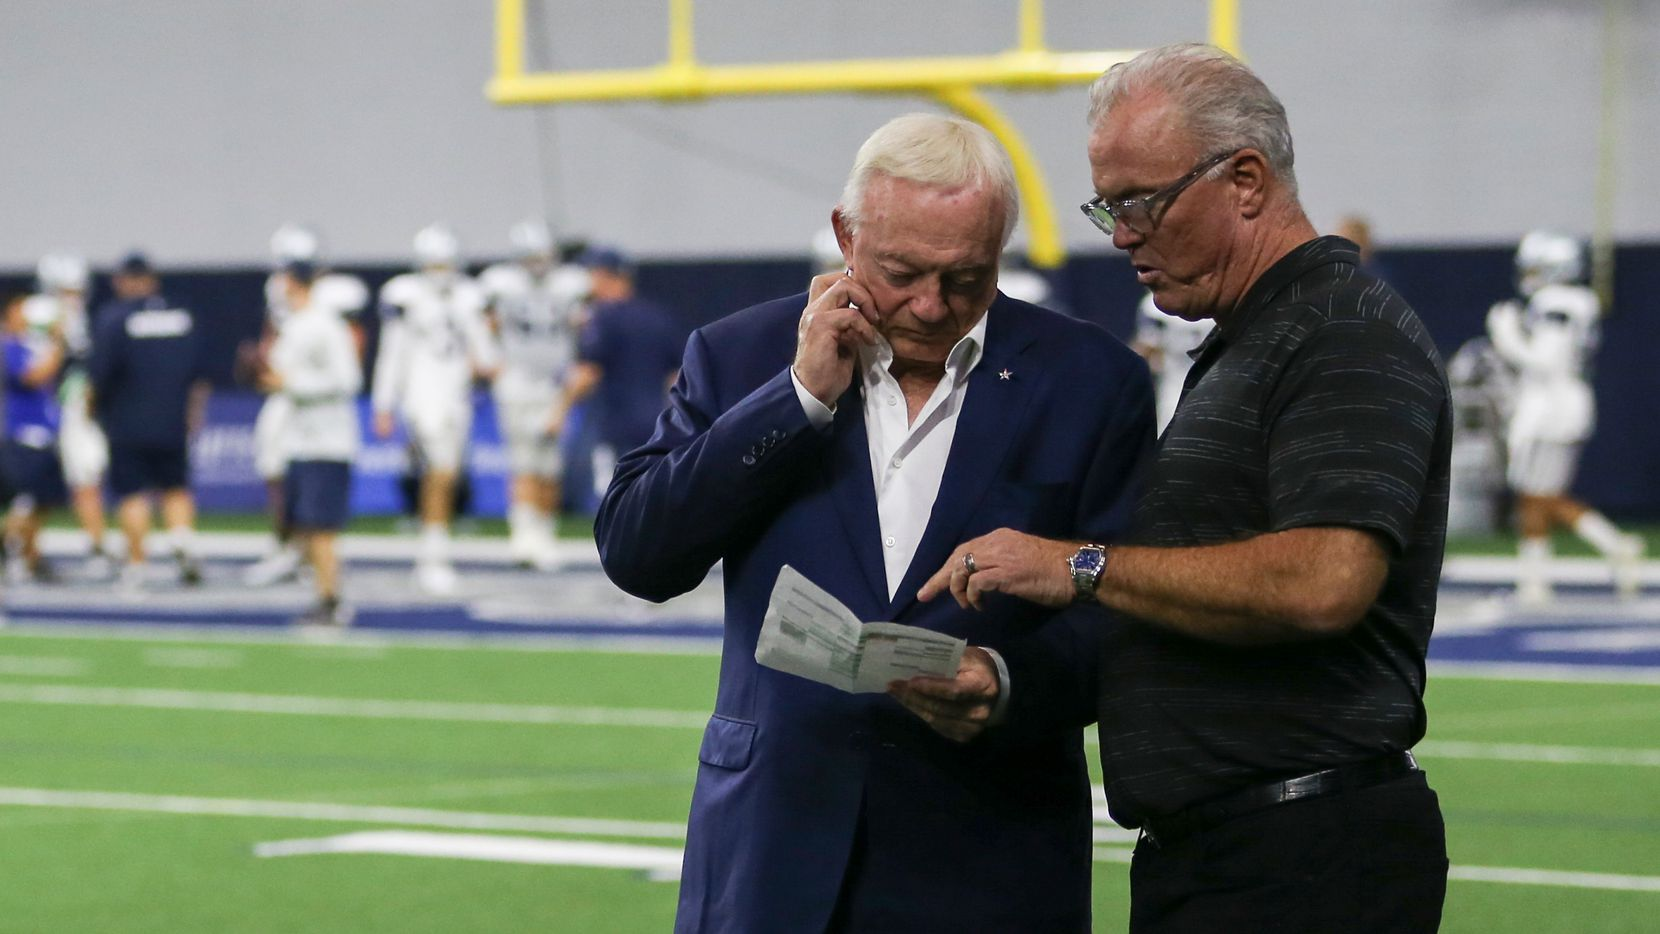 Jerry Jones, left, and Stephen Jones attend a Dallas Cowboys practice on Tuesday, Aug. 27, 2019 at The Star in Frisco, Texas. (Ryan Michalesko/The Dallas Morning News)